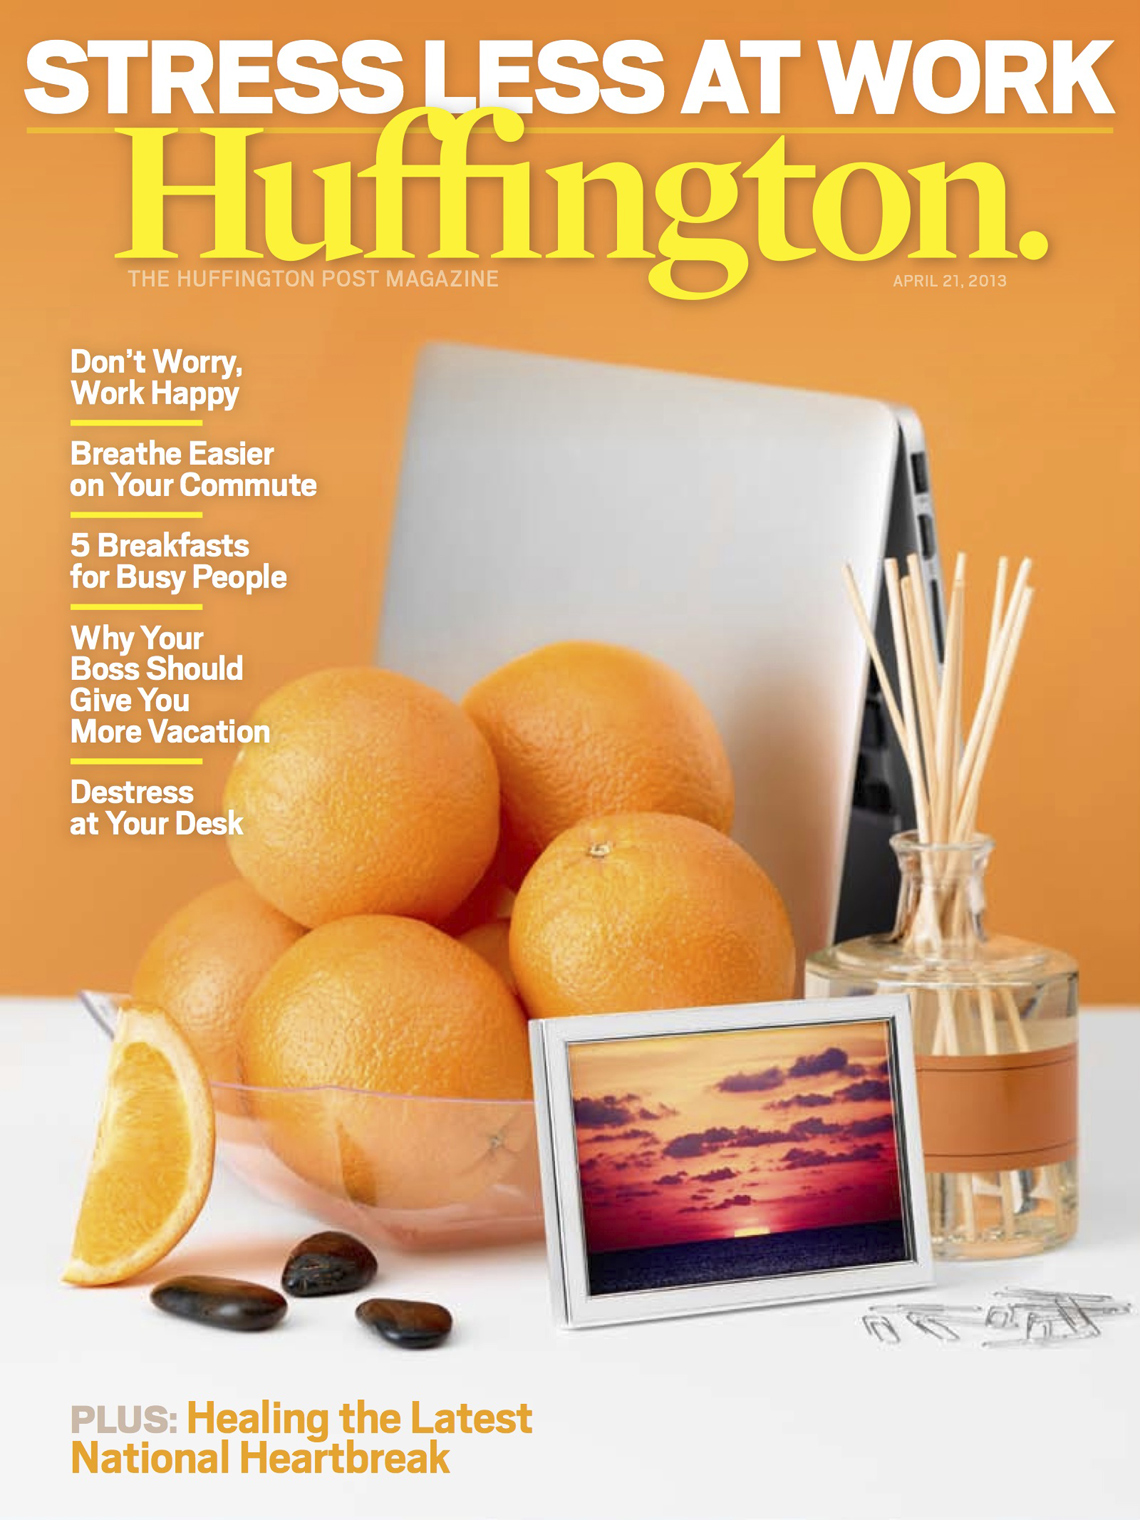 Huffington Post Magazine - April Cover